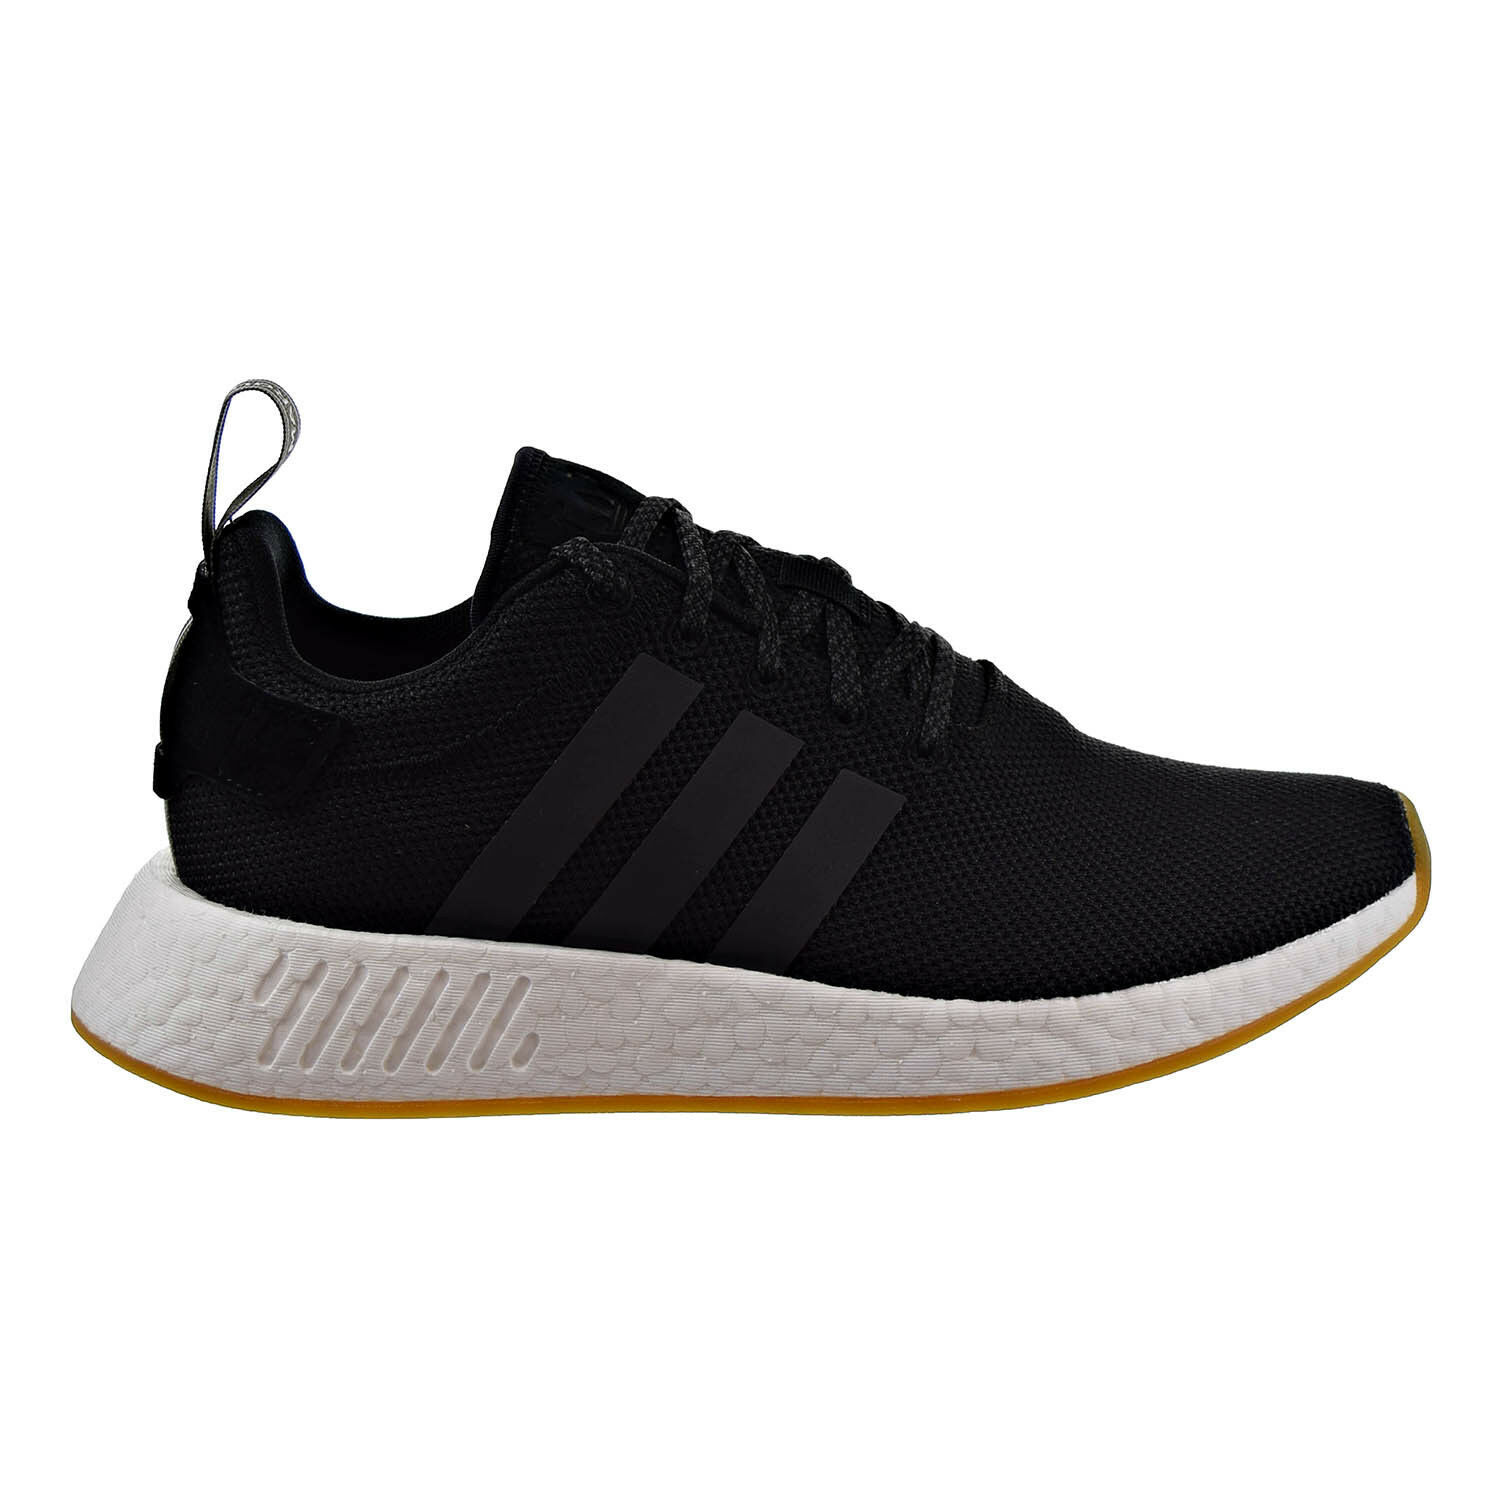 25ee13739 adidas NMD R2 Nomad Core Utility Black Trace Gargo By9917 Size 8.5 ...